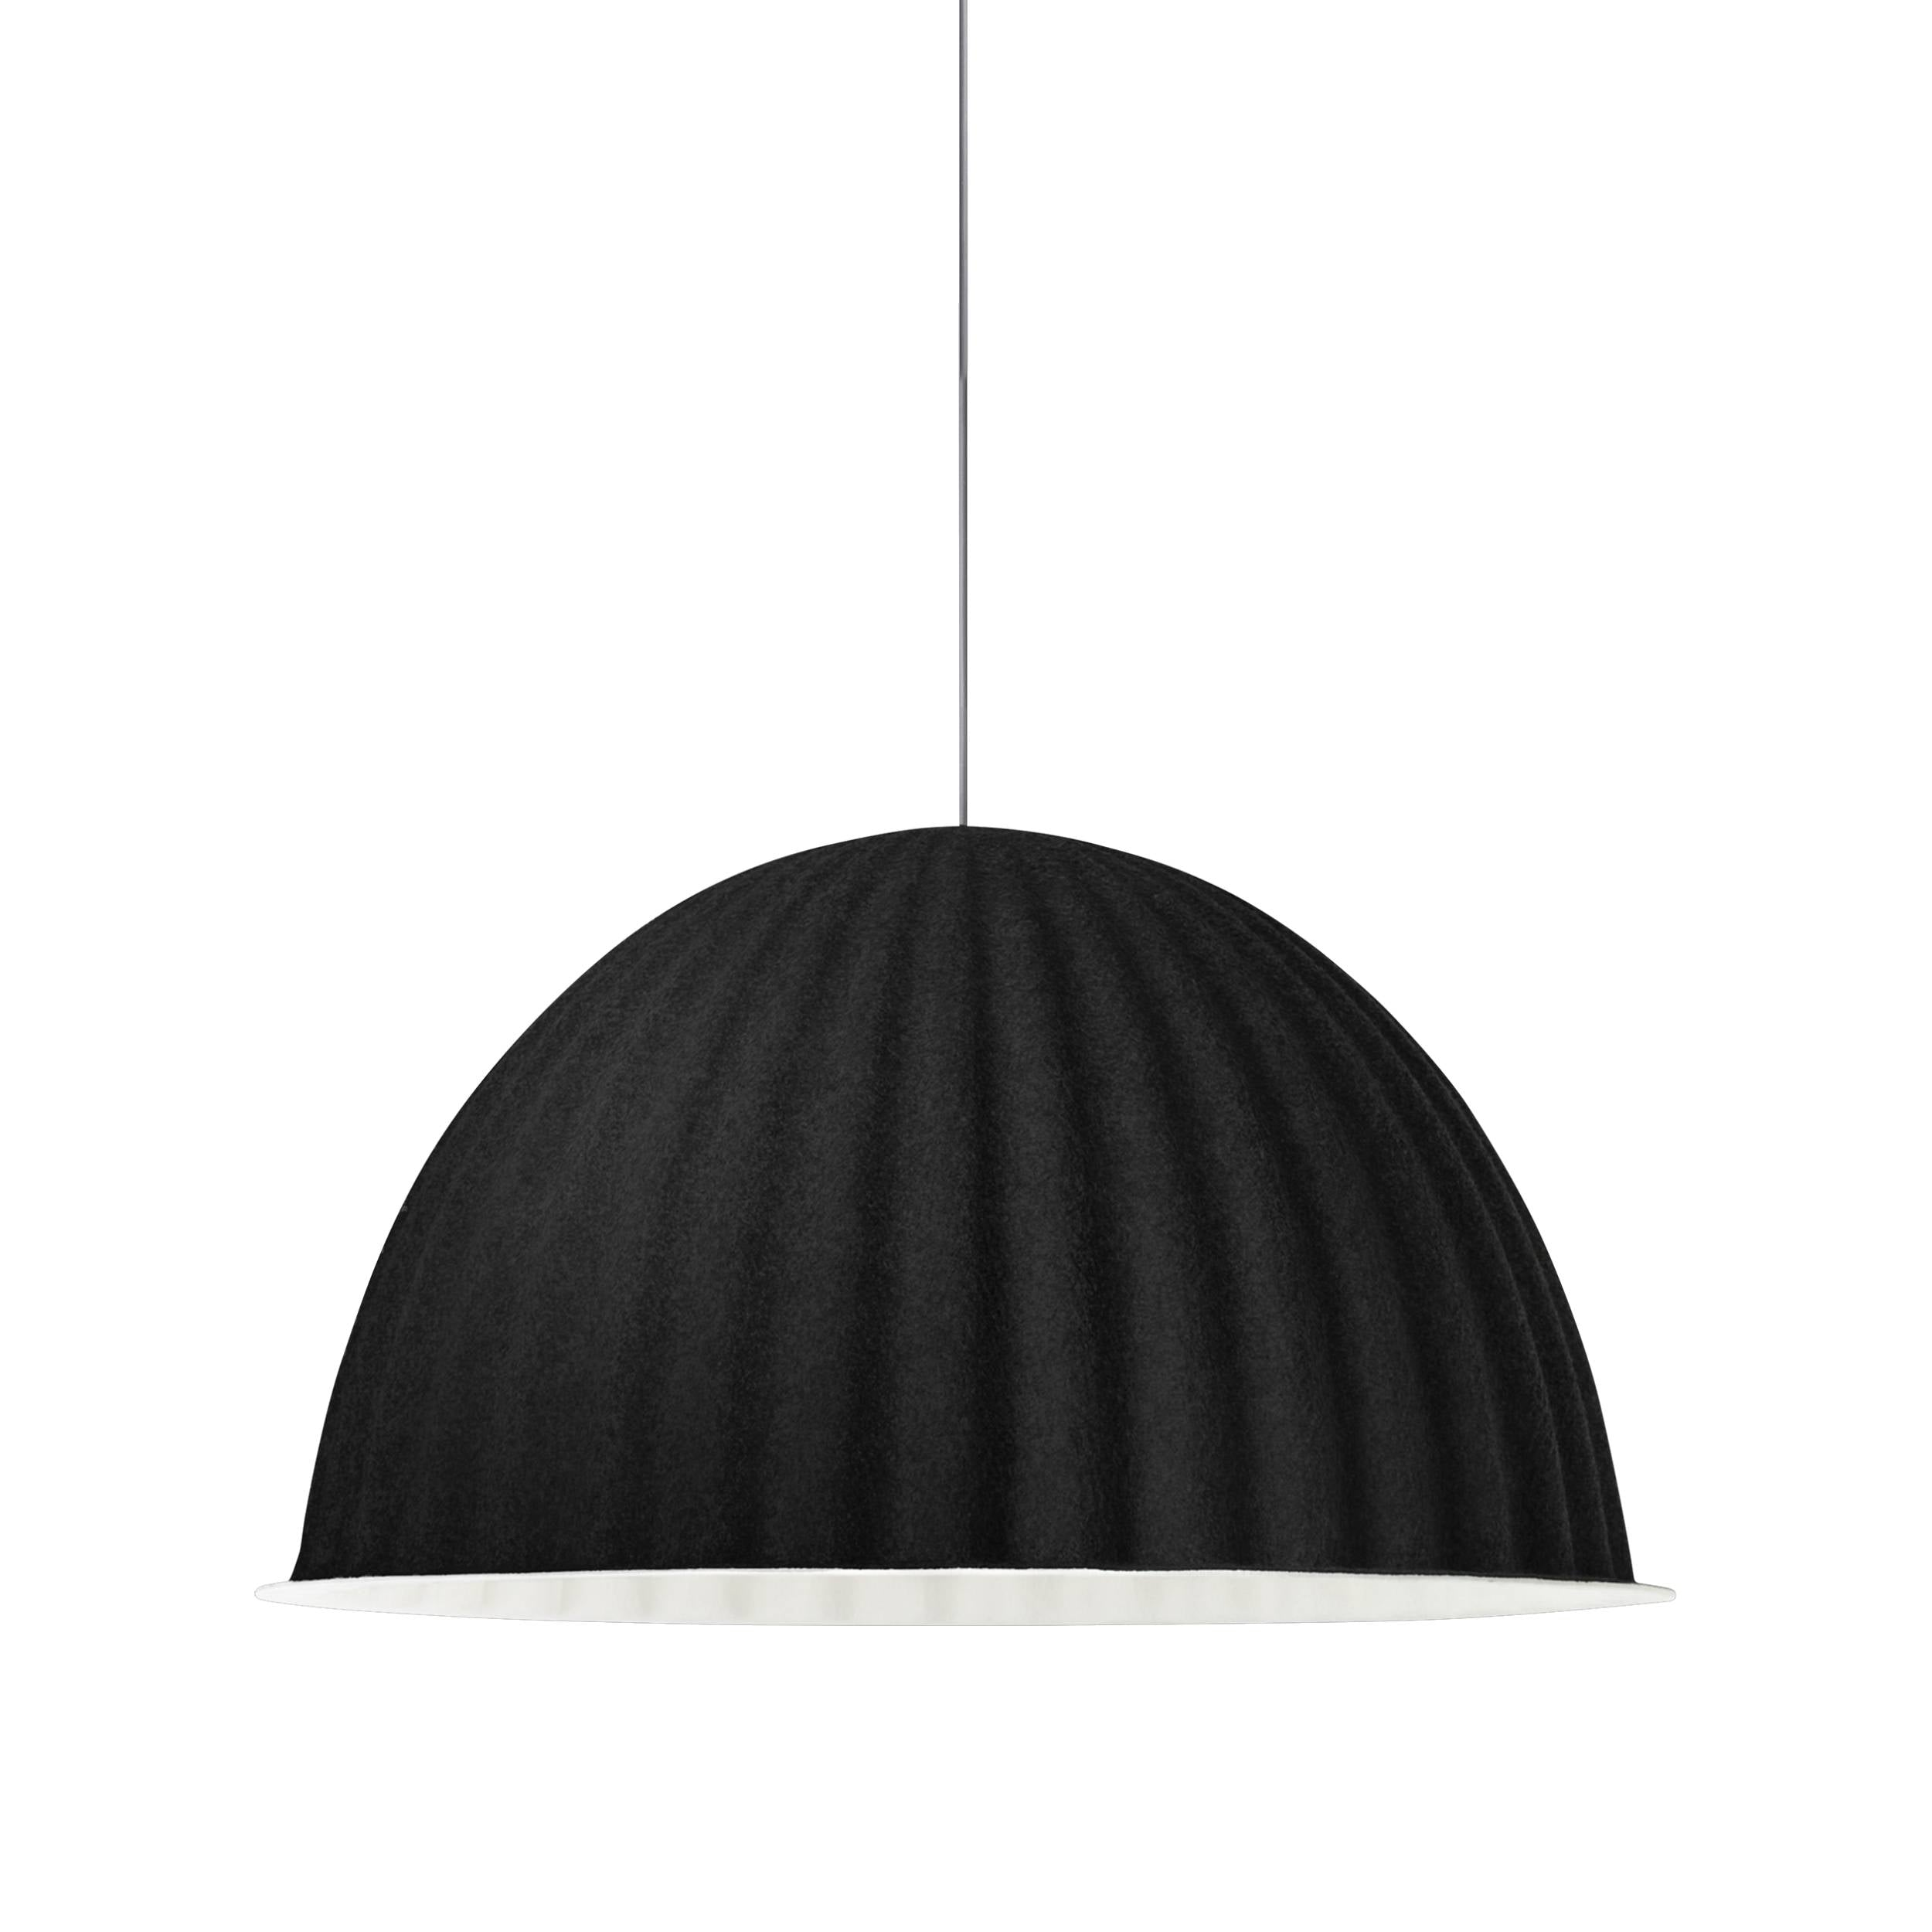 Under the Bell Light: Large - Black